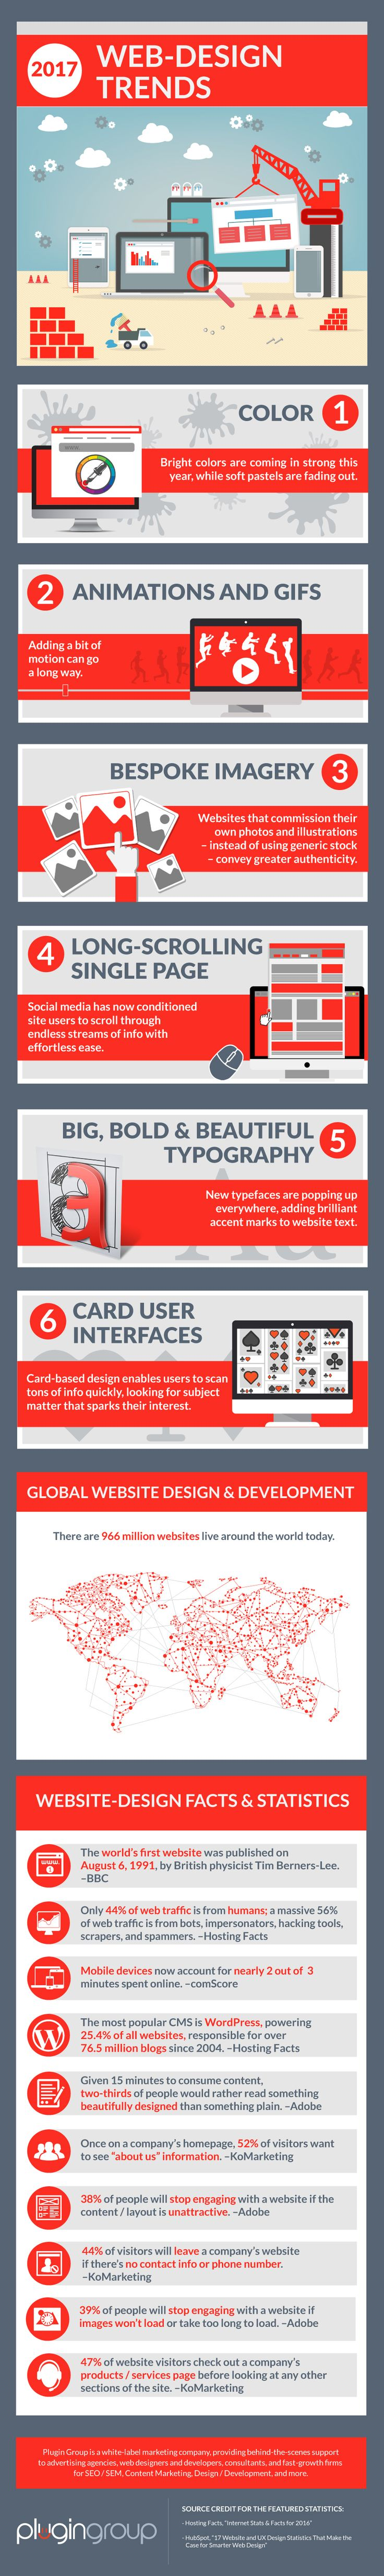 6 Modern Trends to Consider When Creating a New Website [Infographic] - http://topseosoft.com/6-modern-trends-to-consider-when-creating-a-new-website-infographic/